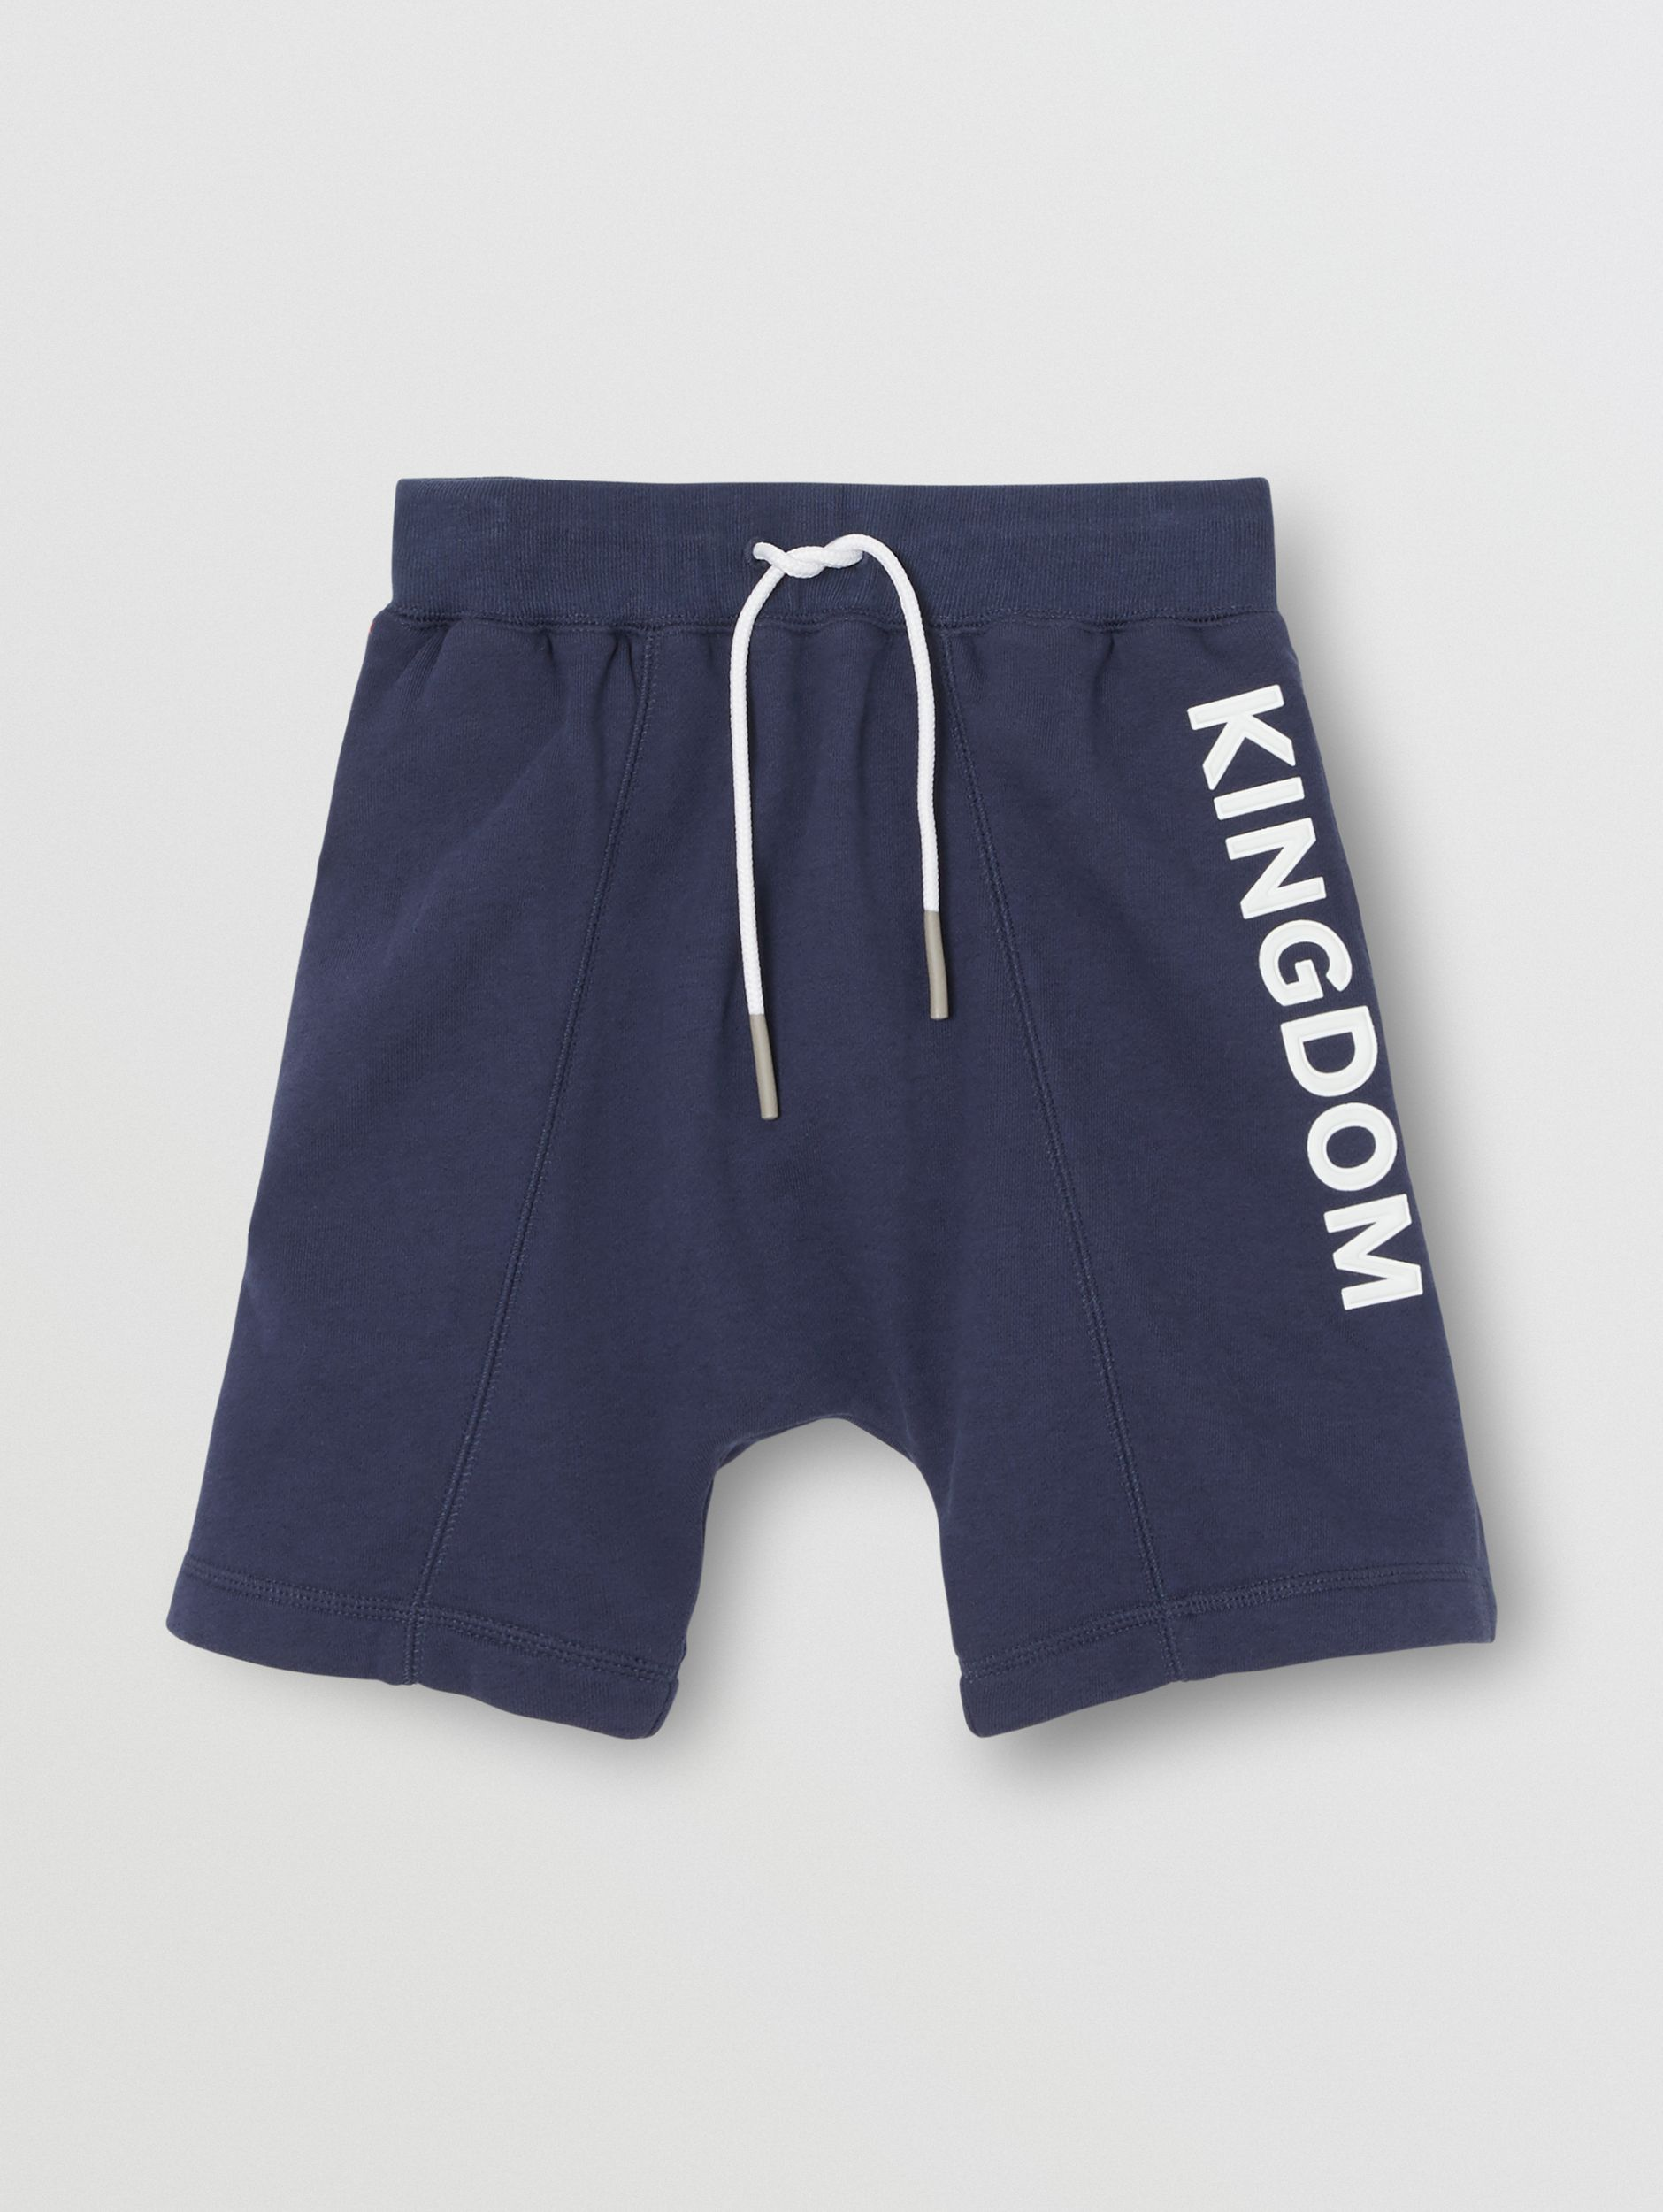 Kingdom Motif Cotton Drawcord Shorts in Slate Blue Melange | Burberry United States - 1